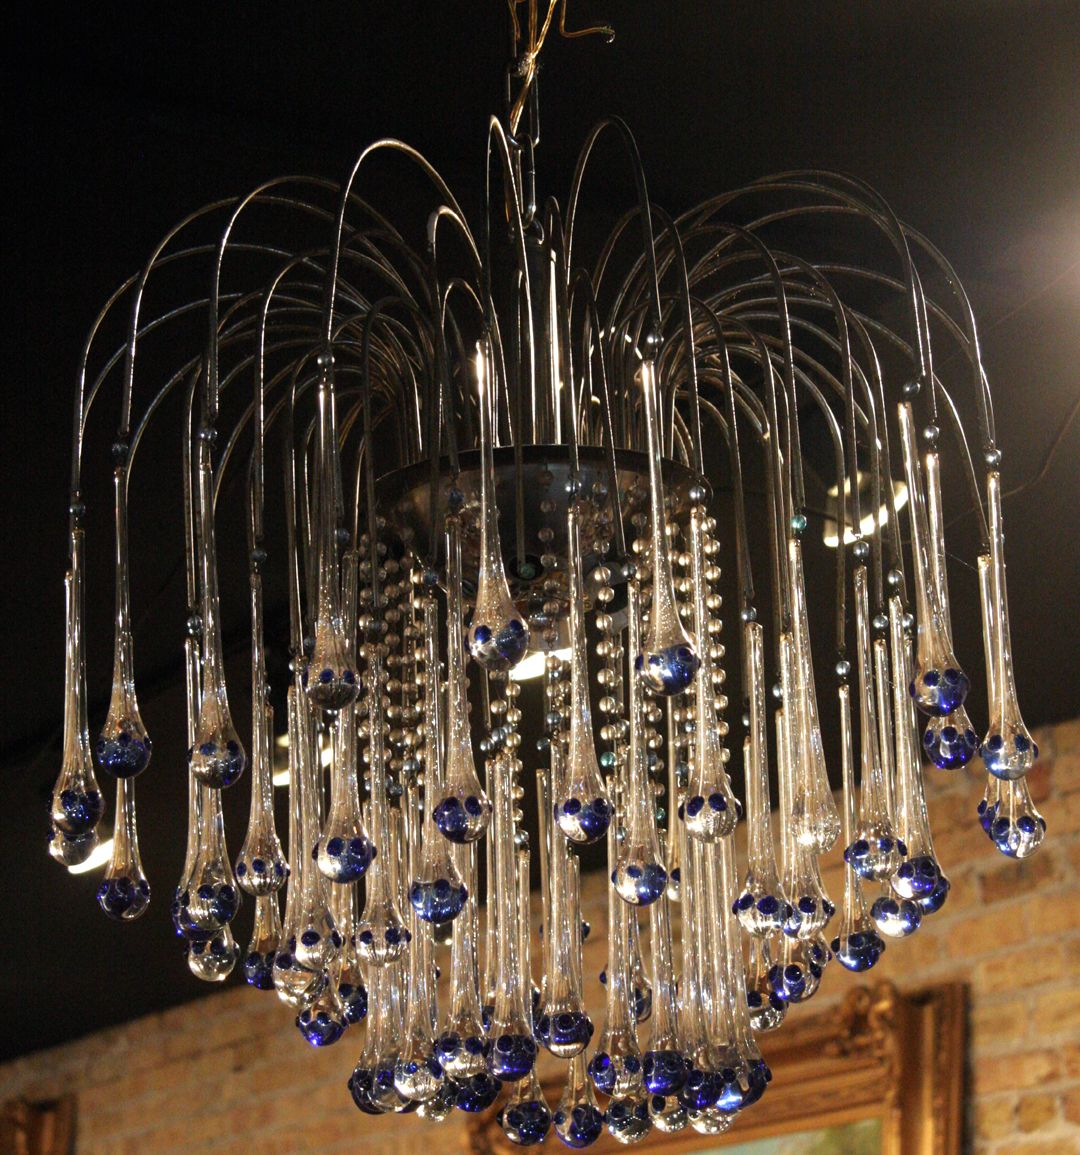 Mid century modern french chandelier with blue tipped glass drops chandeliers mid century modern french chandelier with blue tipped glass drops arubaitofo Images